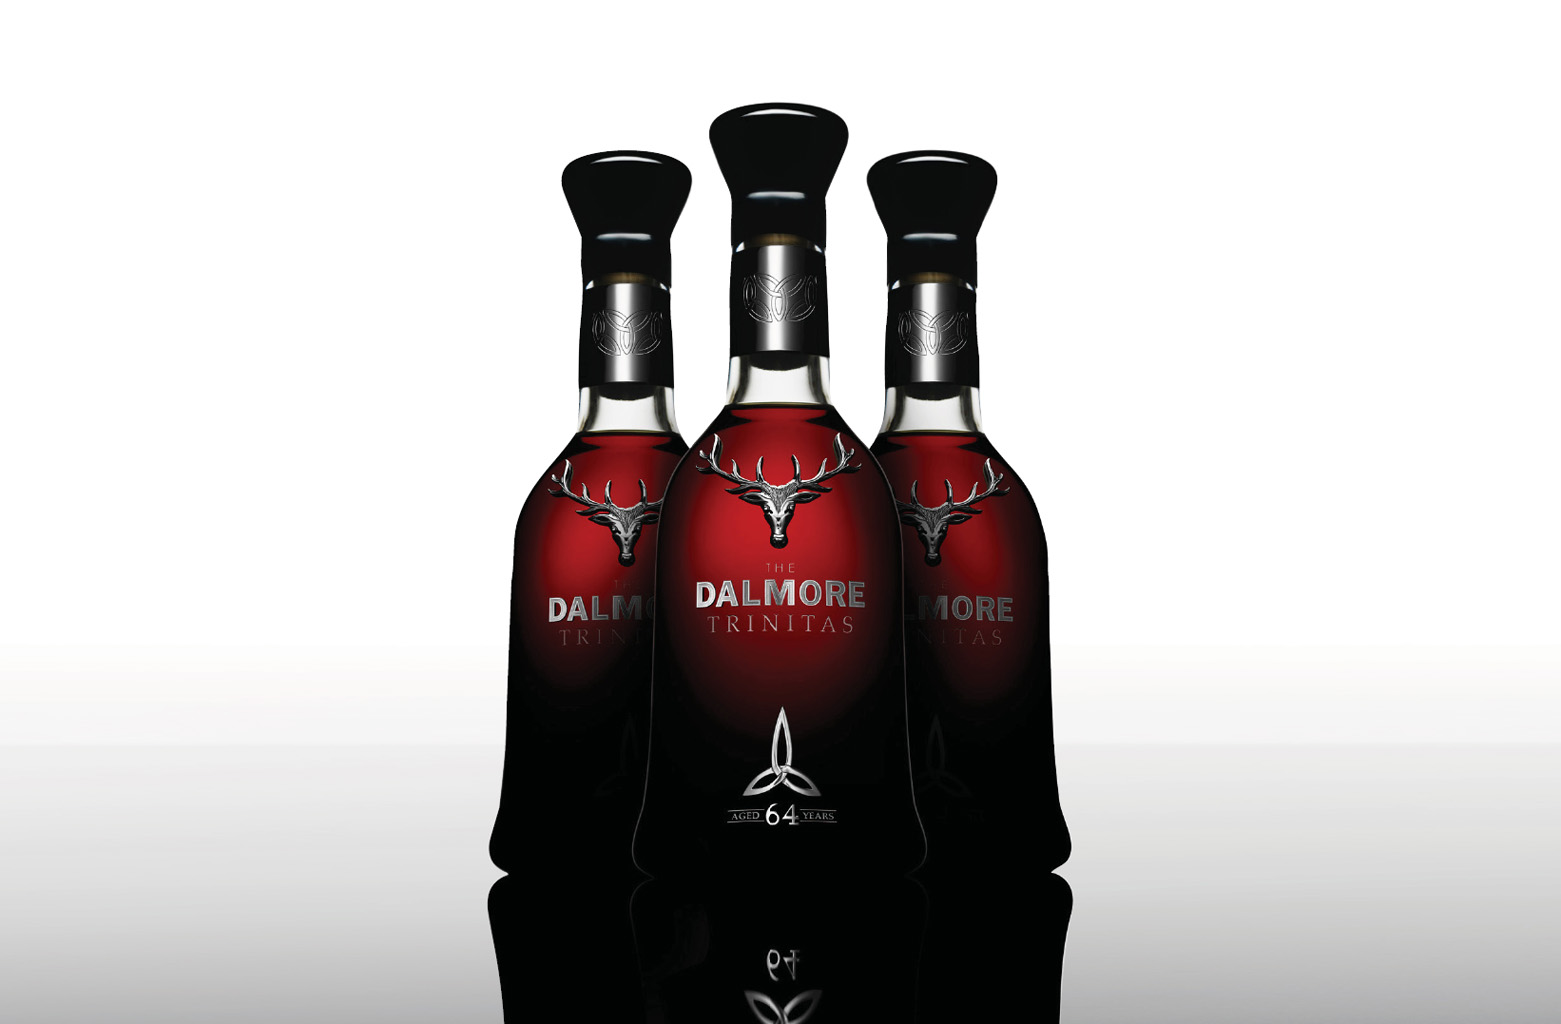 In 2010, just 8 years after starting to focus on single malt whisky, The Dalmore Trinitas broke records by being the first bottle to sell for a six figure sum.